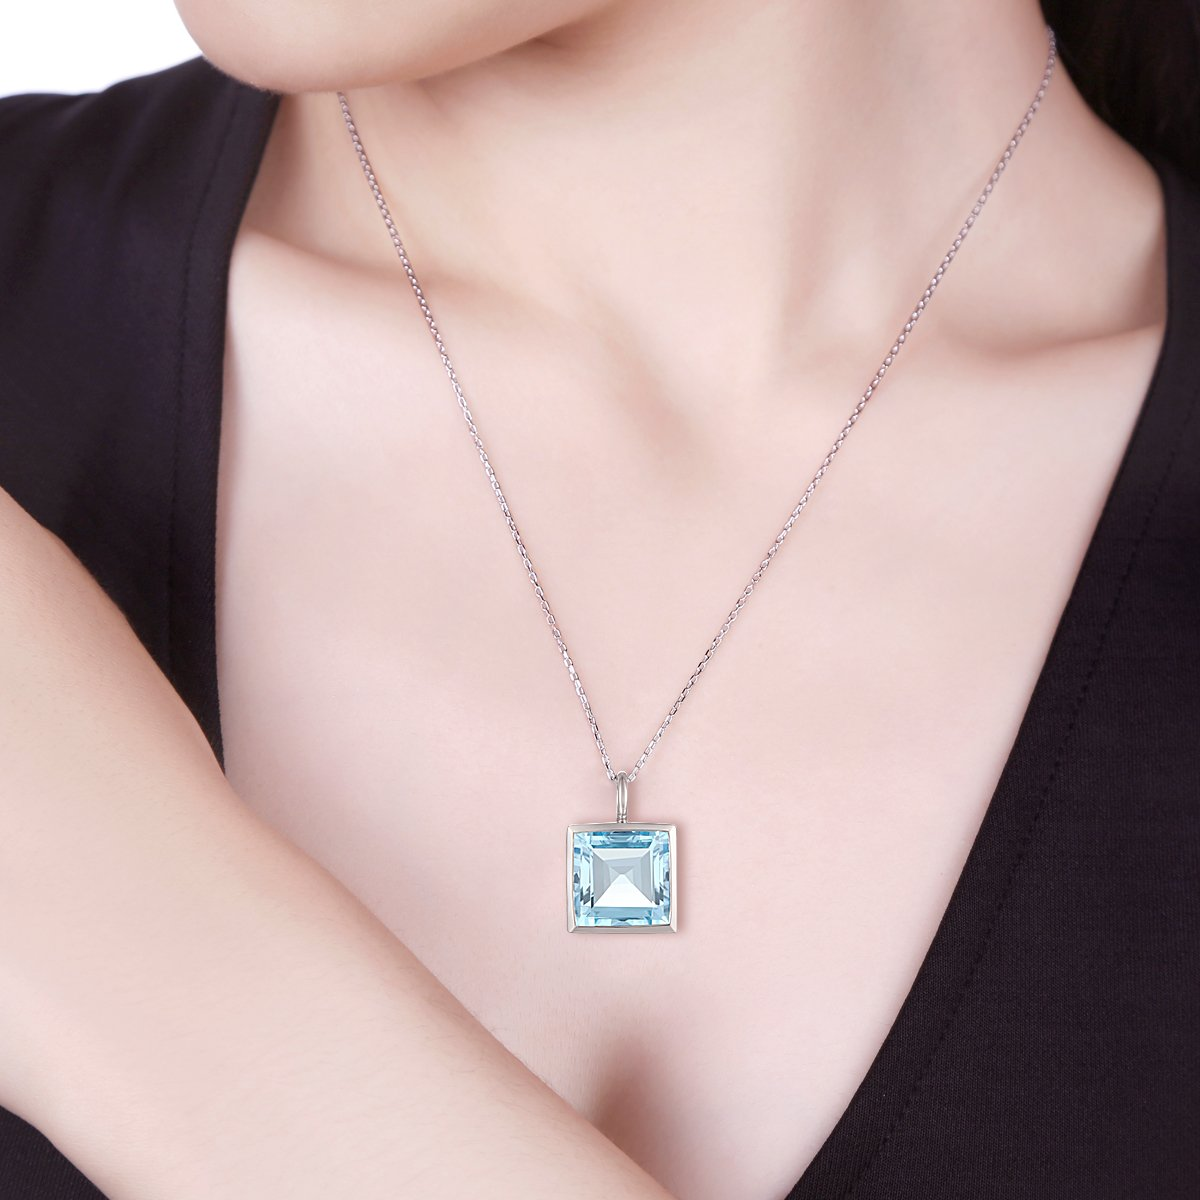 Easter Offer, Jewel Ivy 925 Sterling Silver Pendant with Sky Blue Topaz by Jewel Ivy (Image #2)